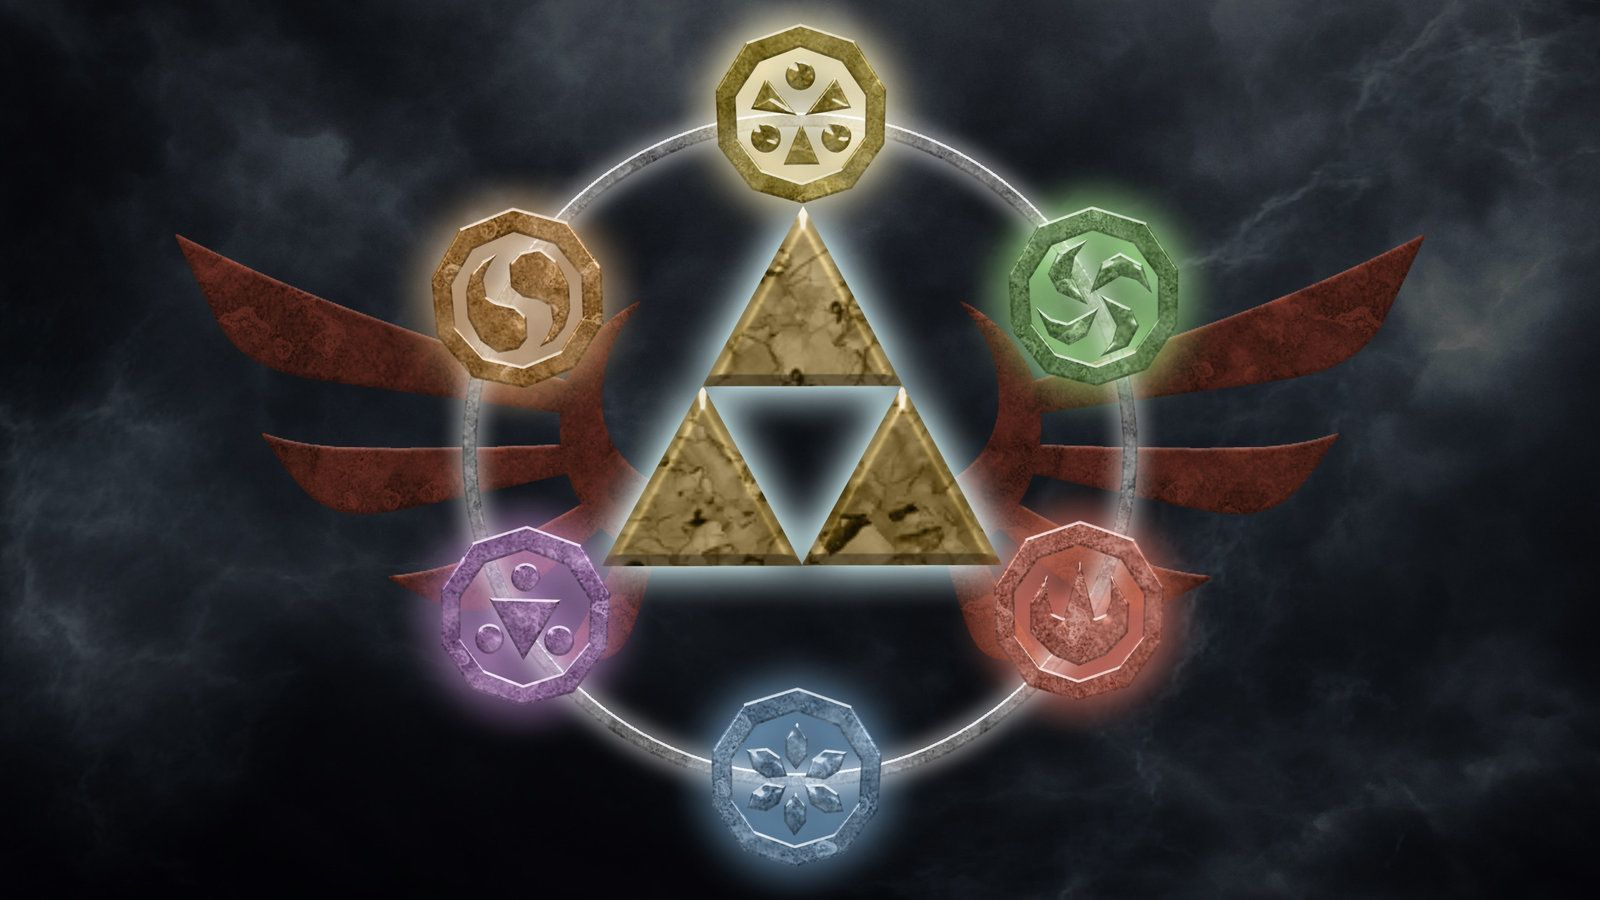 The Legend Of Zelda: Ocarina Of Time HD Wallpapers 1600x900